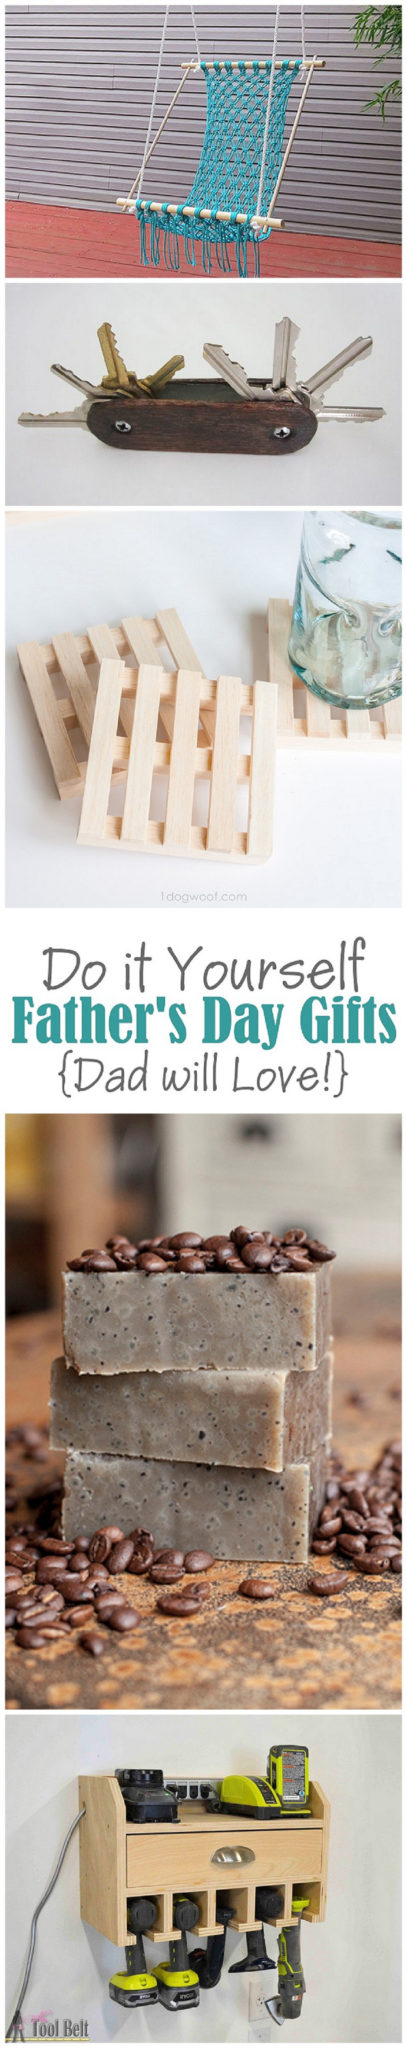 The Best Do it Yourself Projects for Dad this Fathers Day - Really Cool Step by Step Tutorials and Recipes to let Dad know he's your HERO! #fathersday #diygiftsfordad